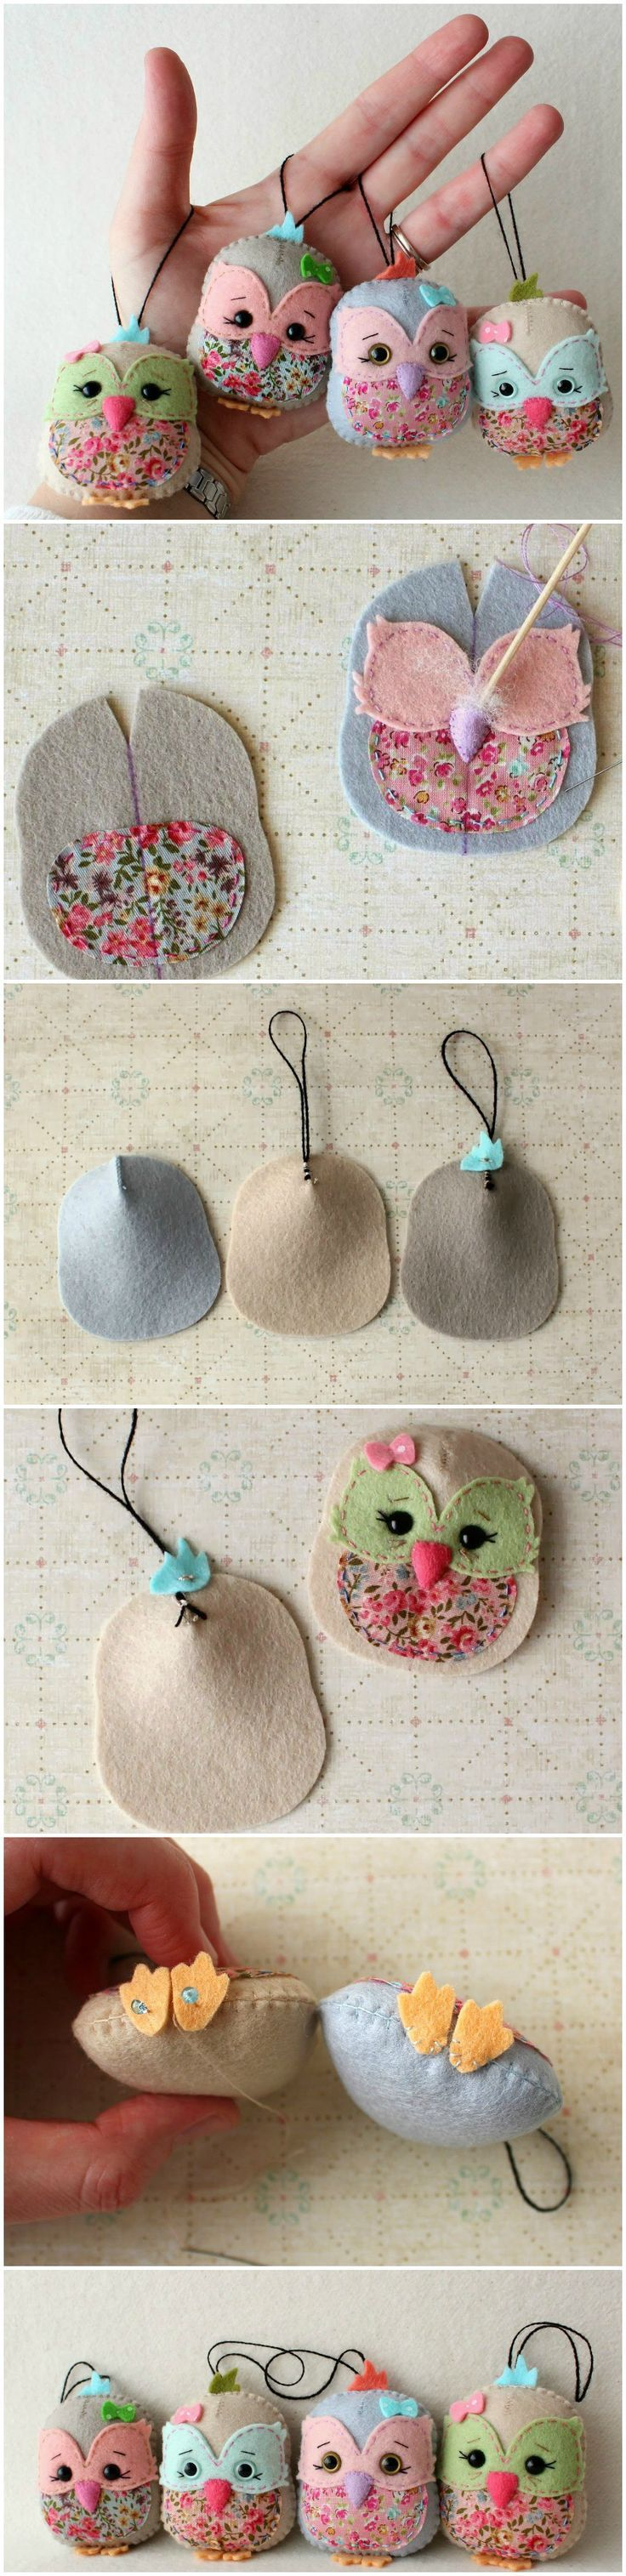 Gingermelon Dolls: Free Pattern – Little Lark Lavender // For more family resources visit http://www.ifamilykc.com! :)